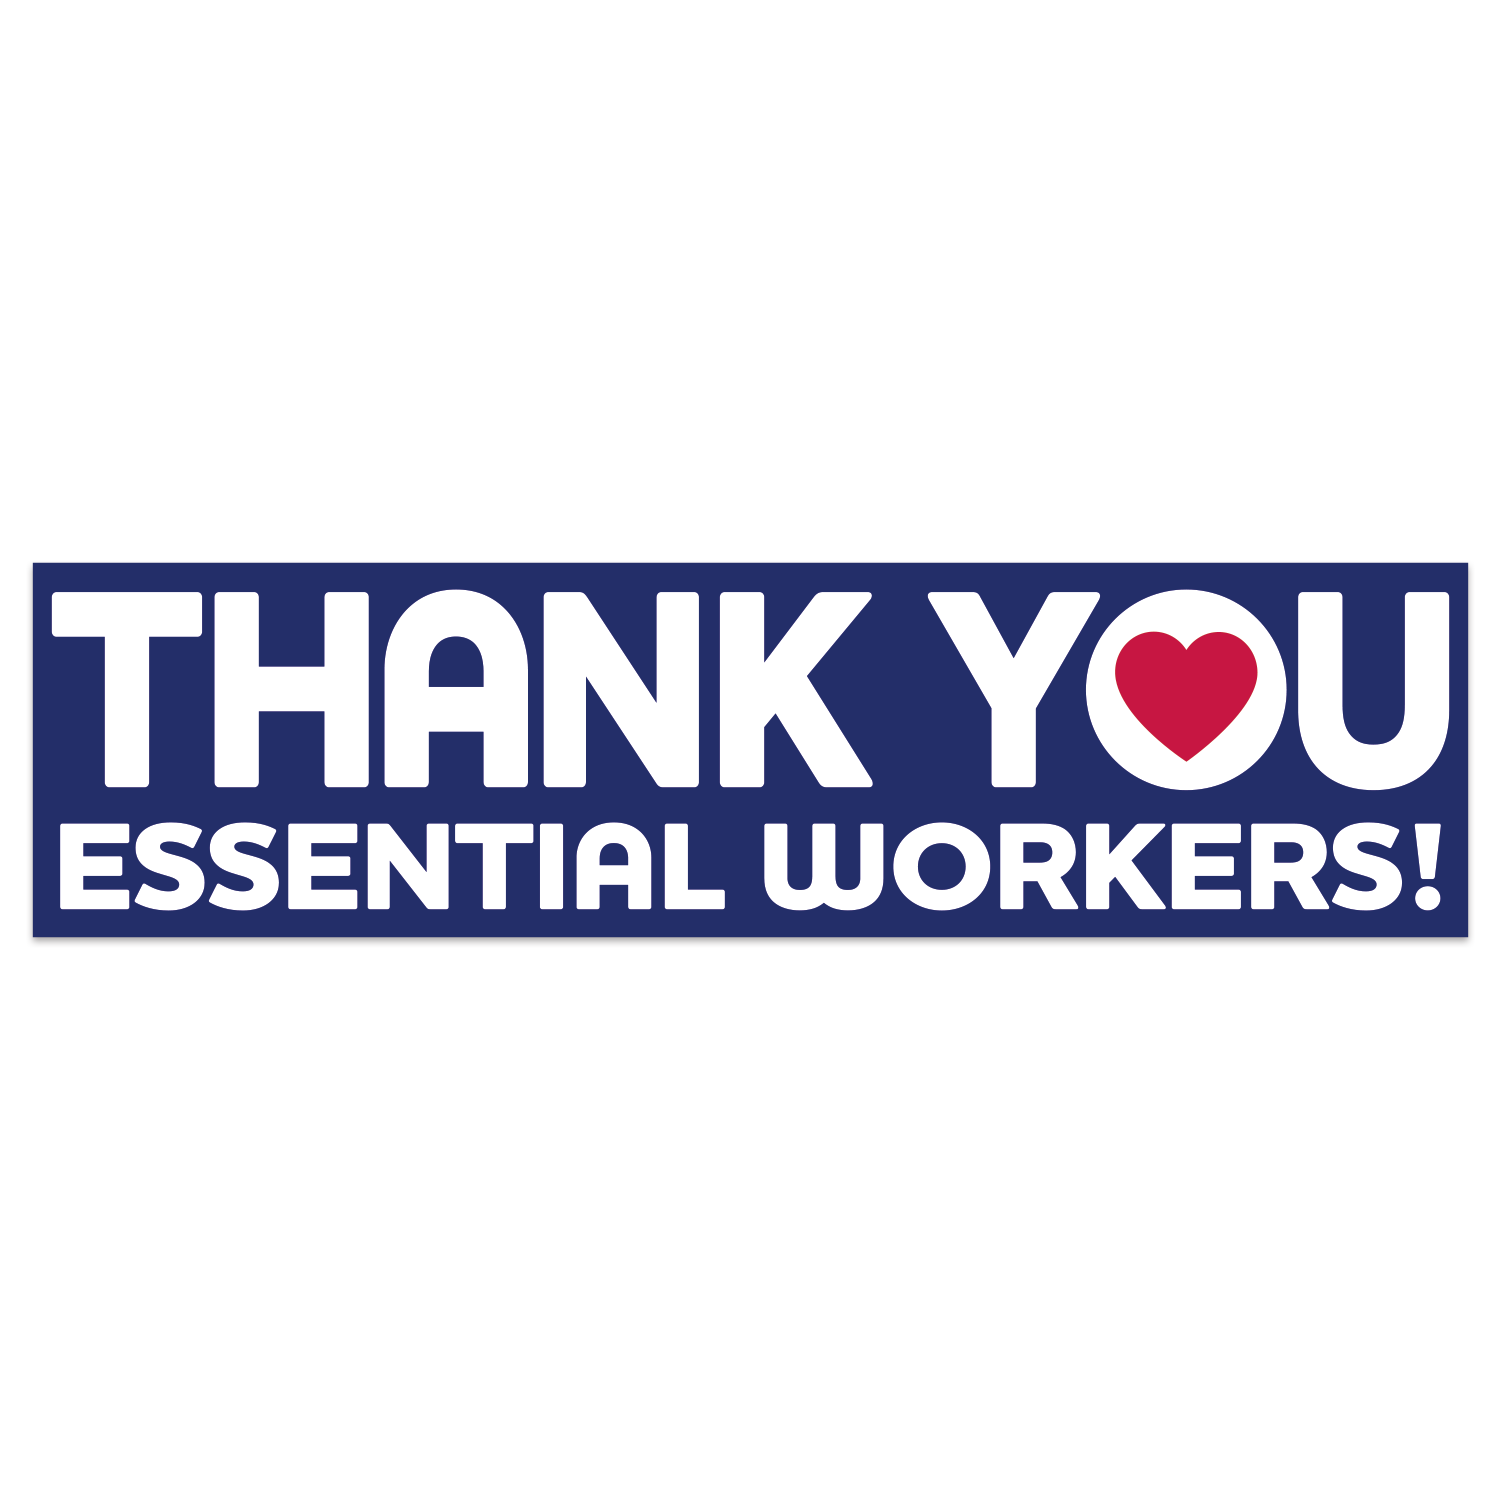 https://www.sswprinting.com/images/products_gallery_images/595301_Thank-you-Essential-Workers_hi-res.png